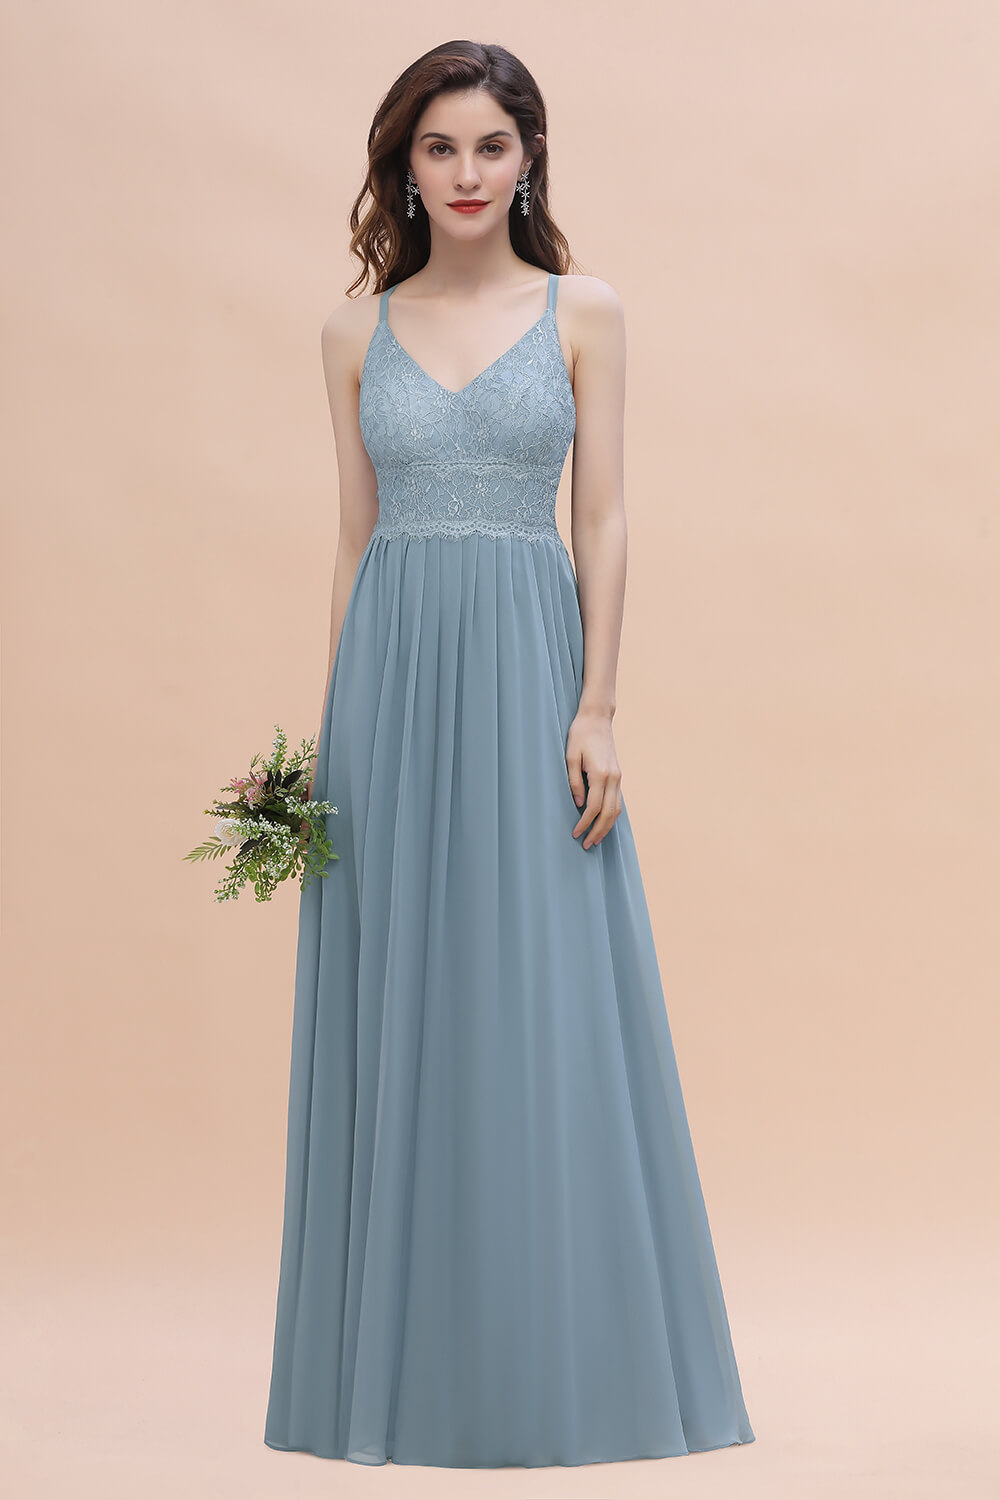 dusty blue lace bridesmaid dress